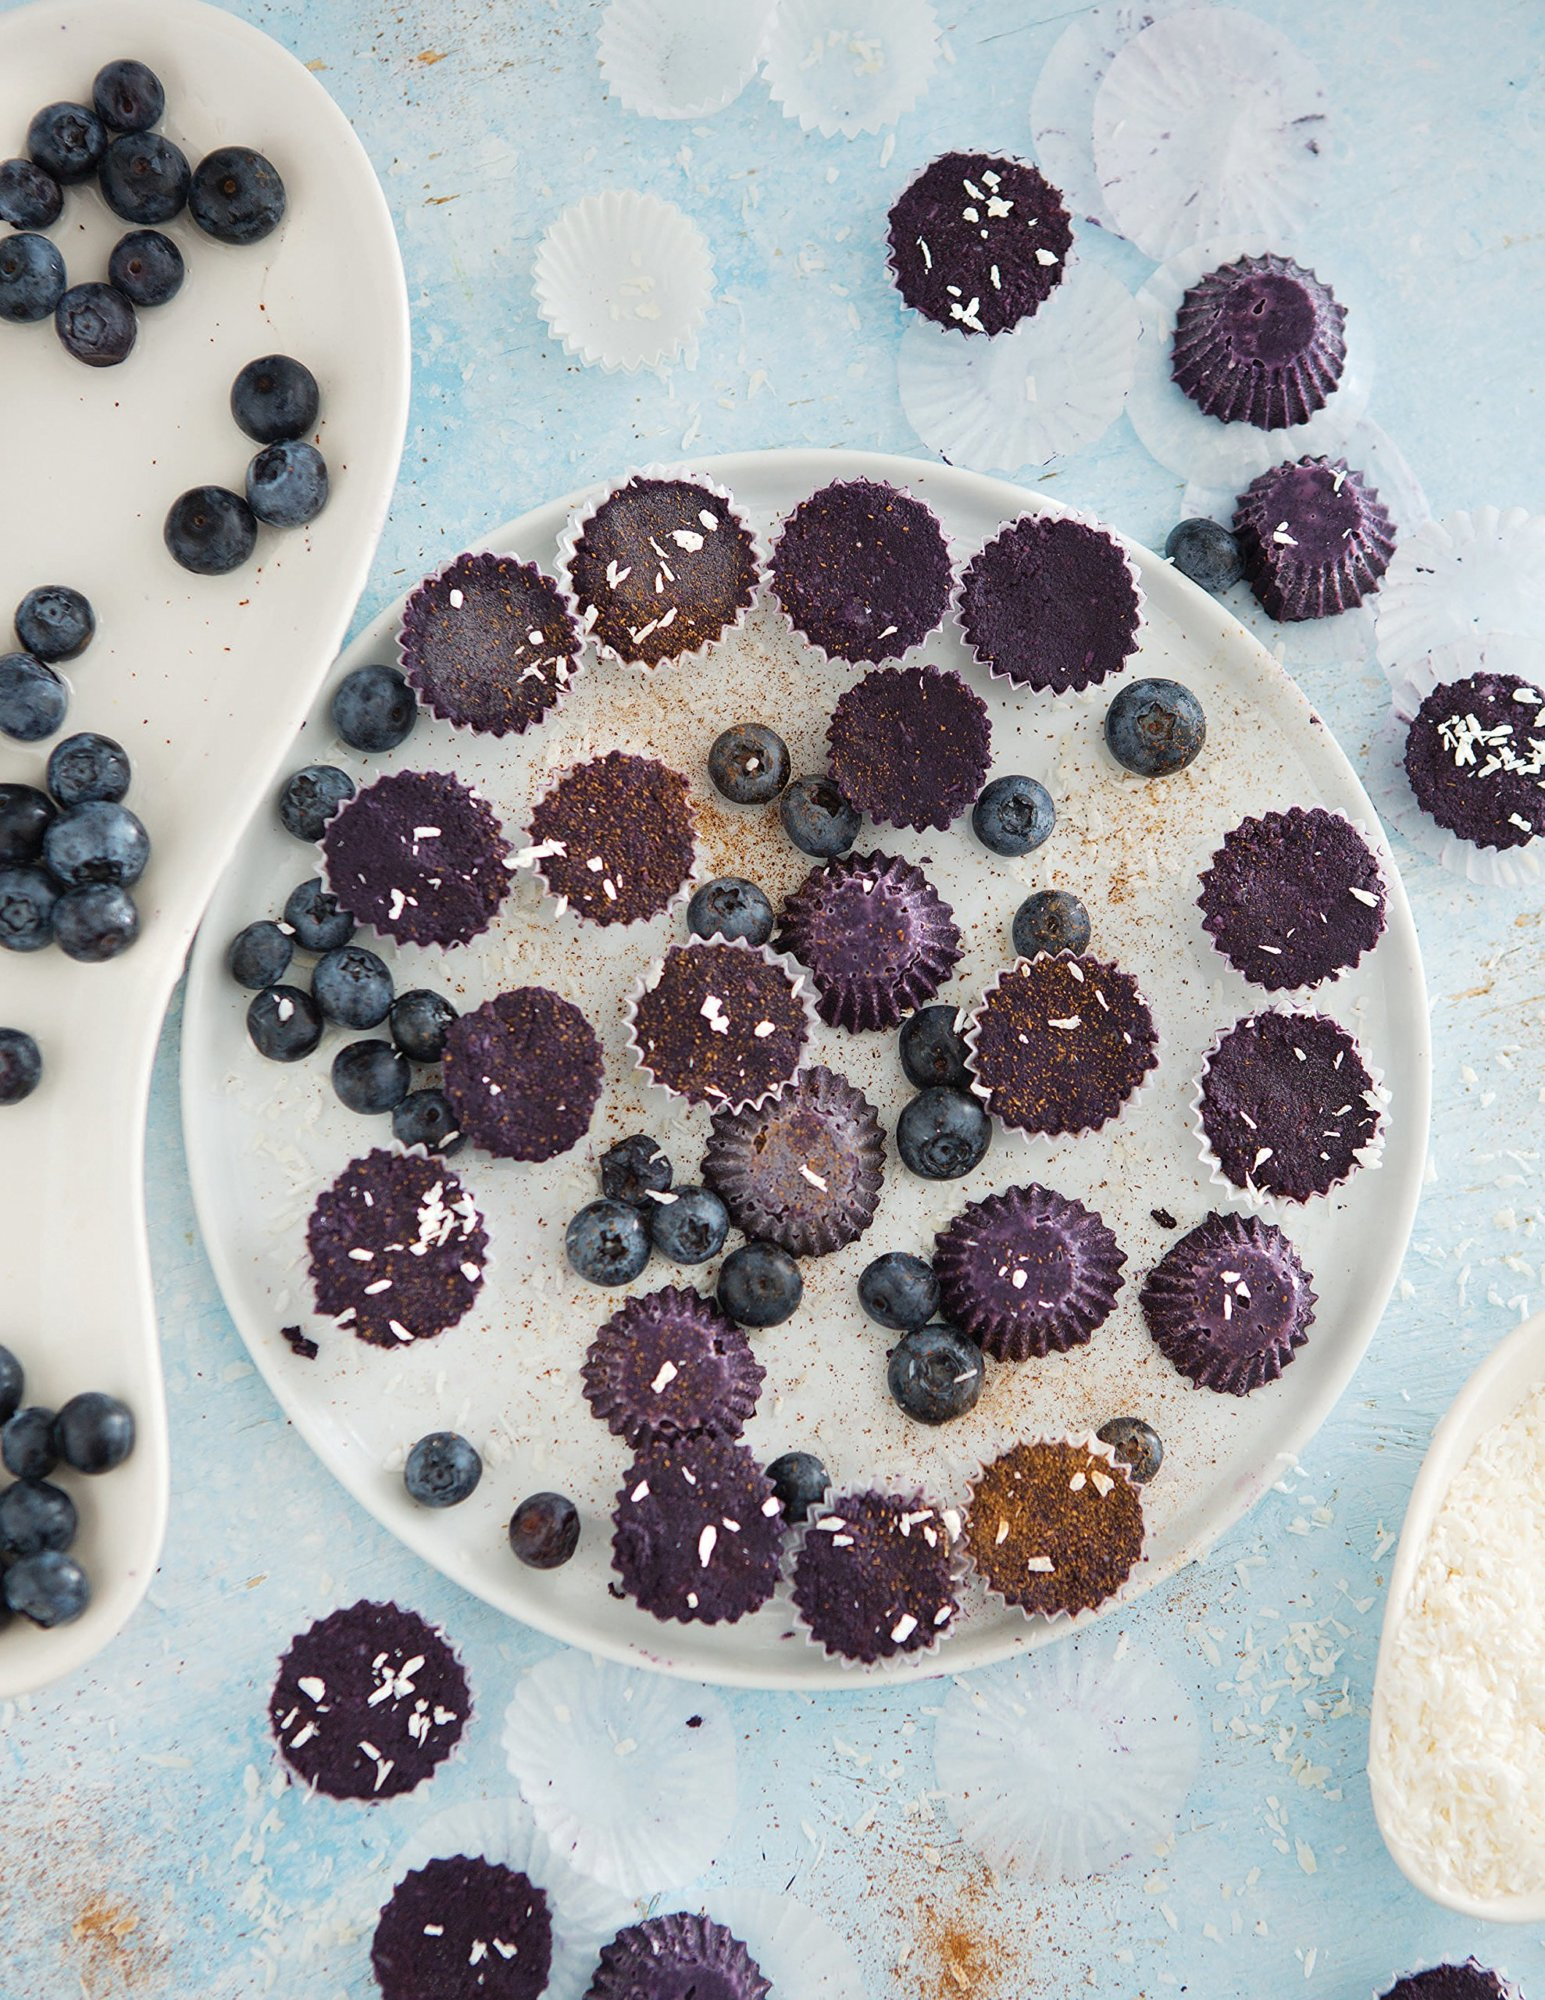 Digestive Health with Real Food - Blueberry Fat Bombs Recipe - Stockholm, Sweden